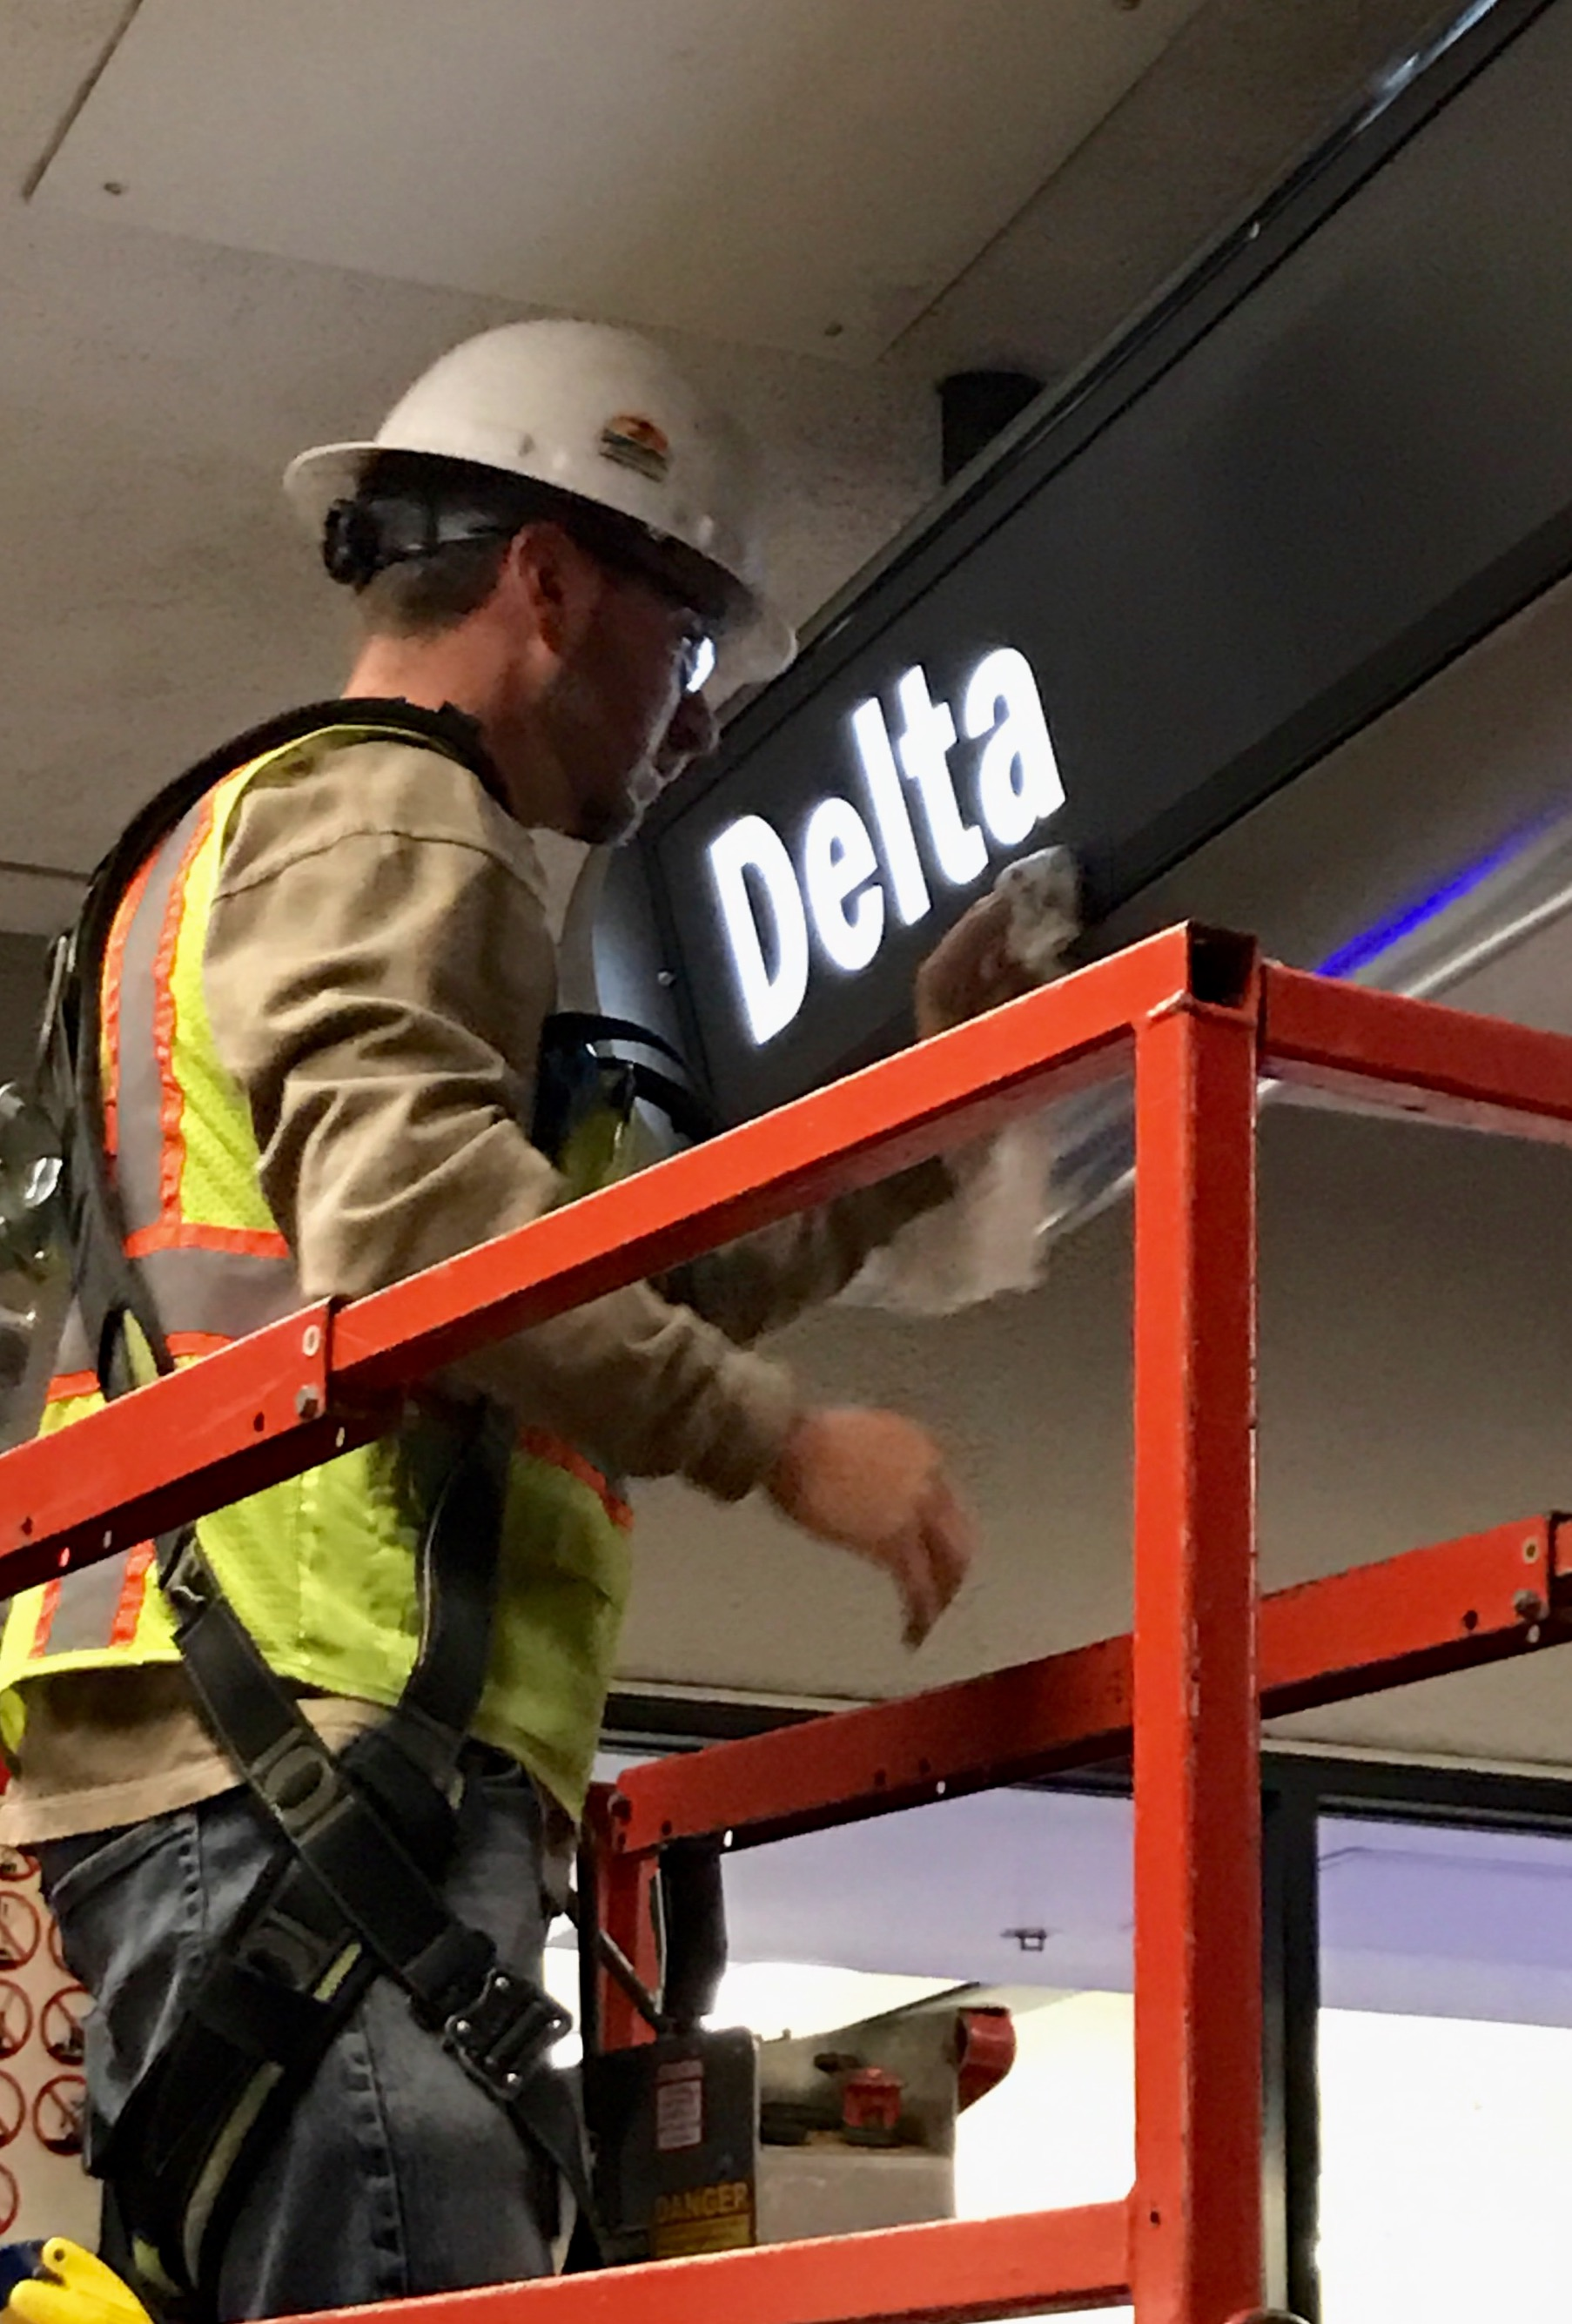 Construction at LAX